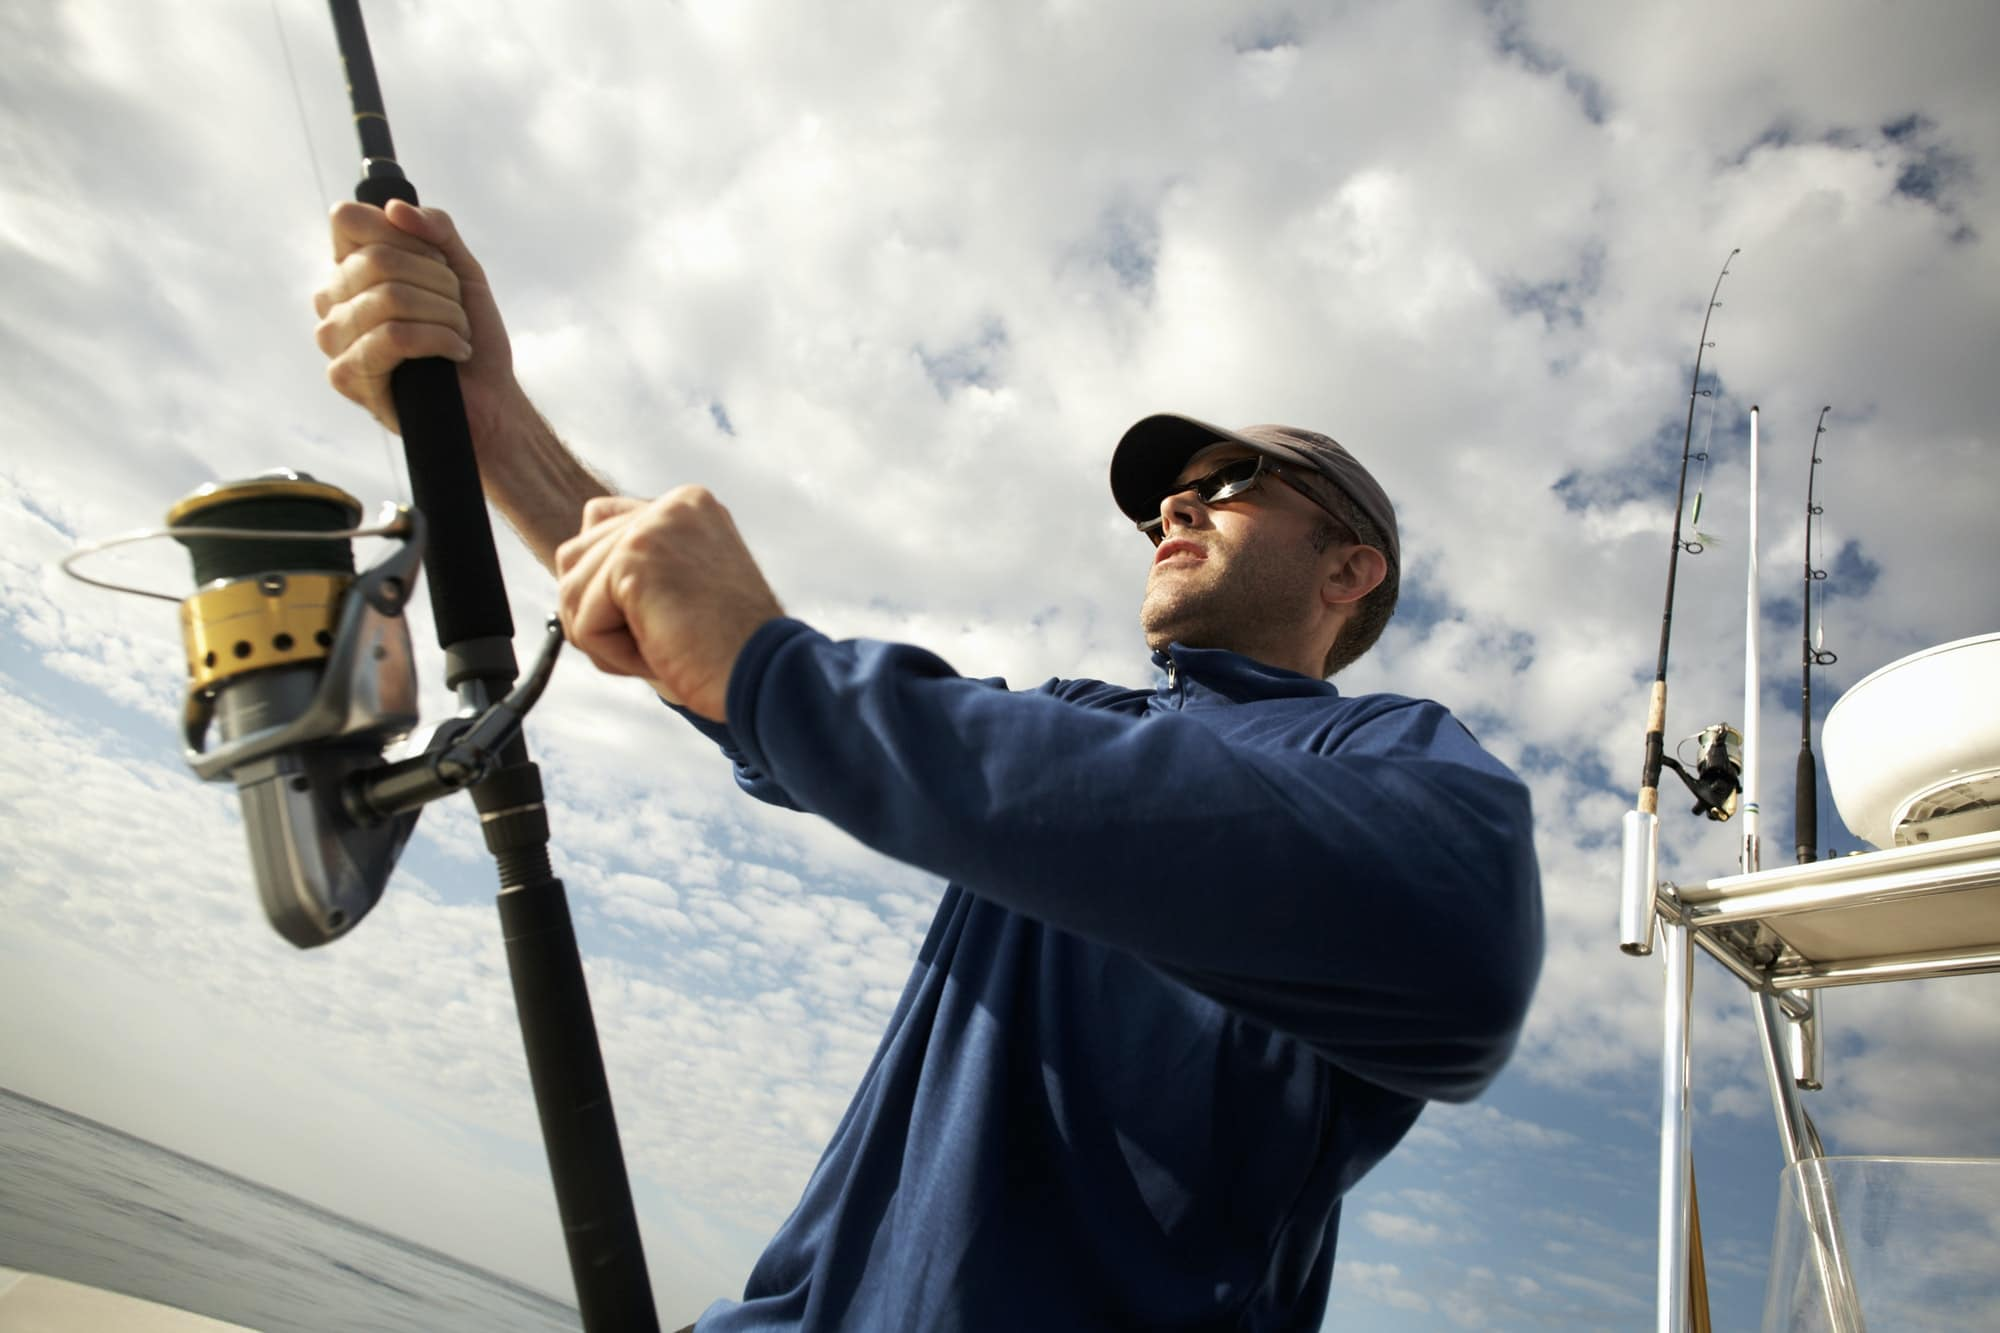 A man on a boat holding a fishing rod.